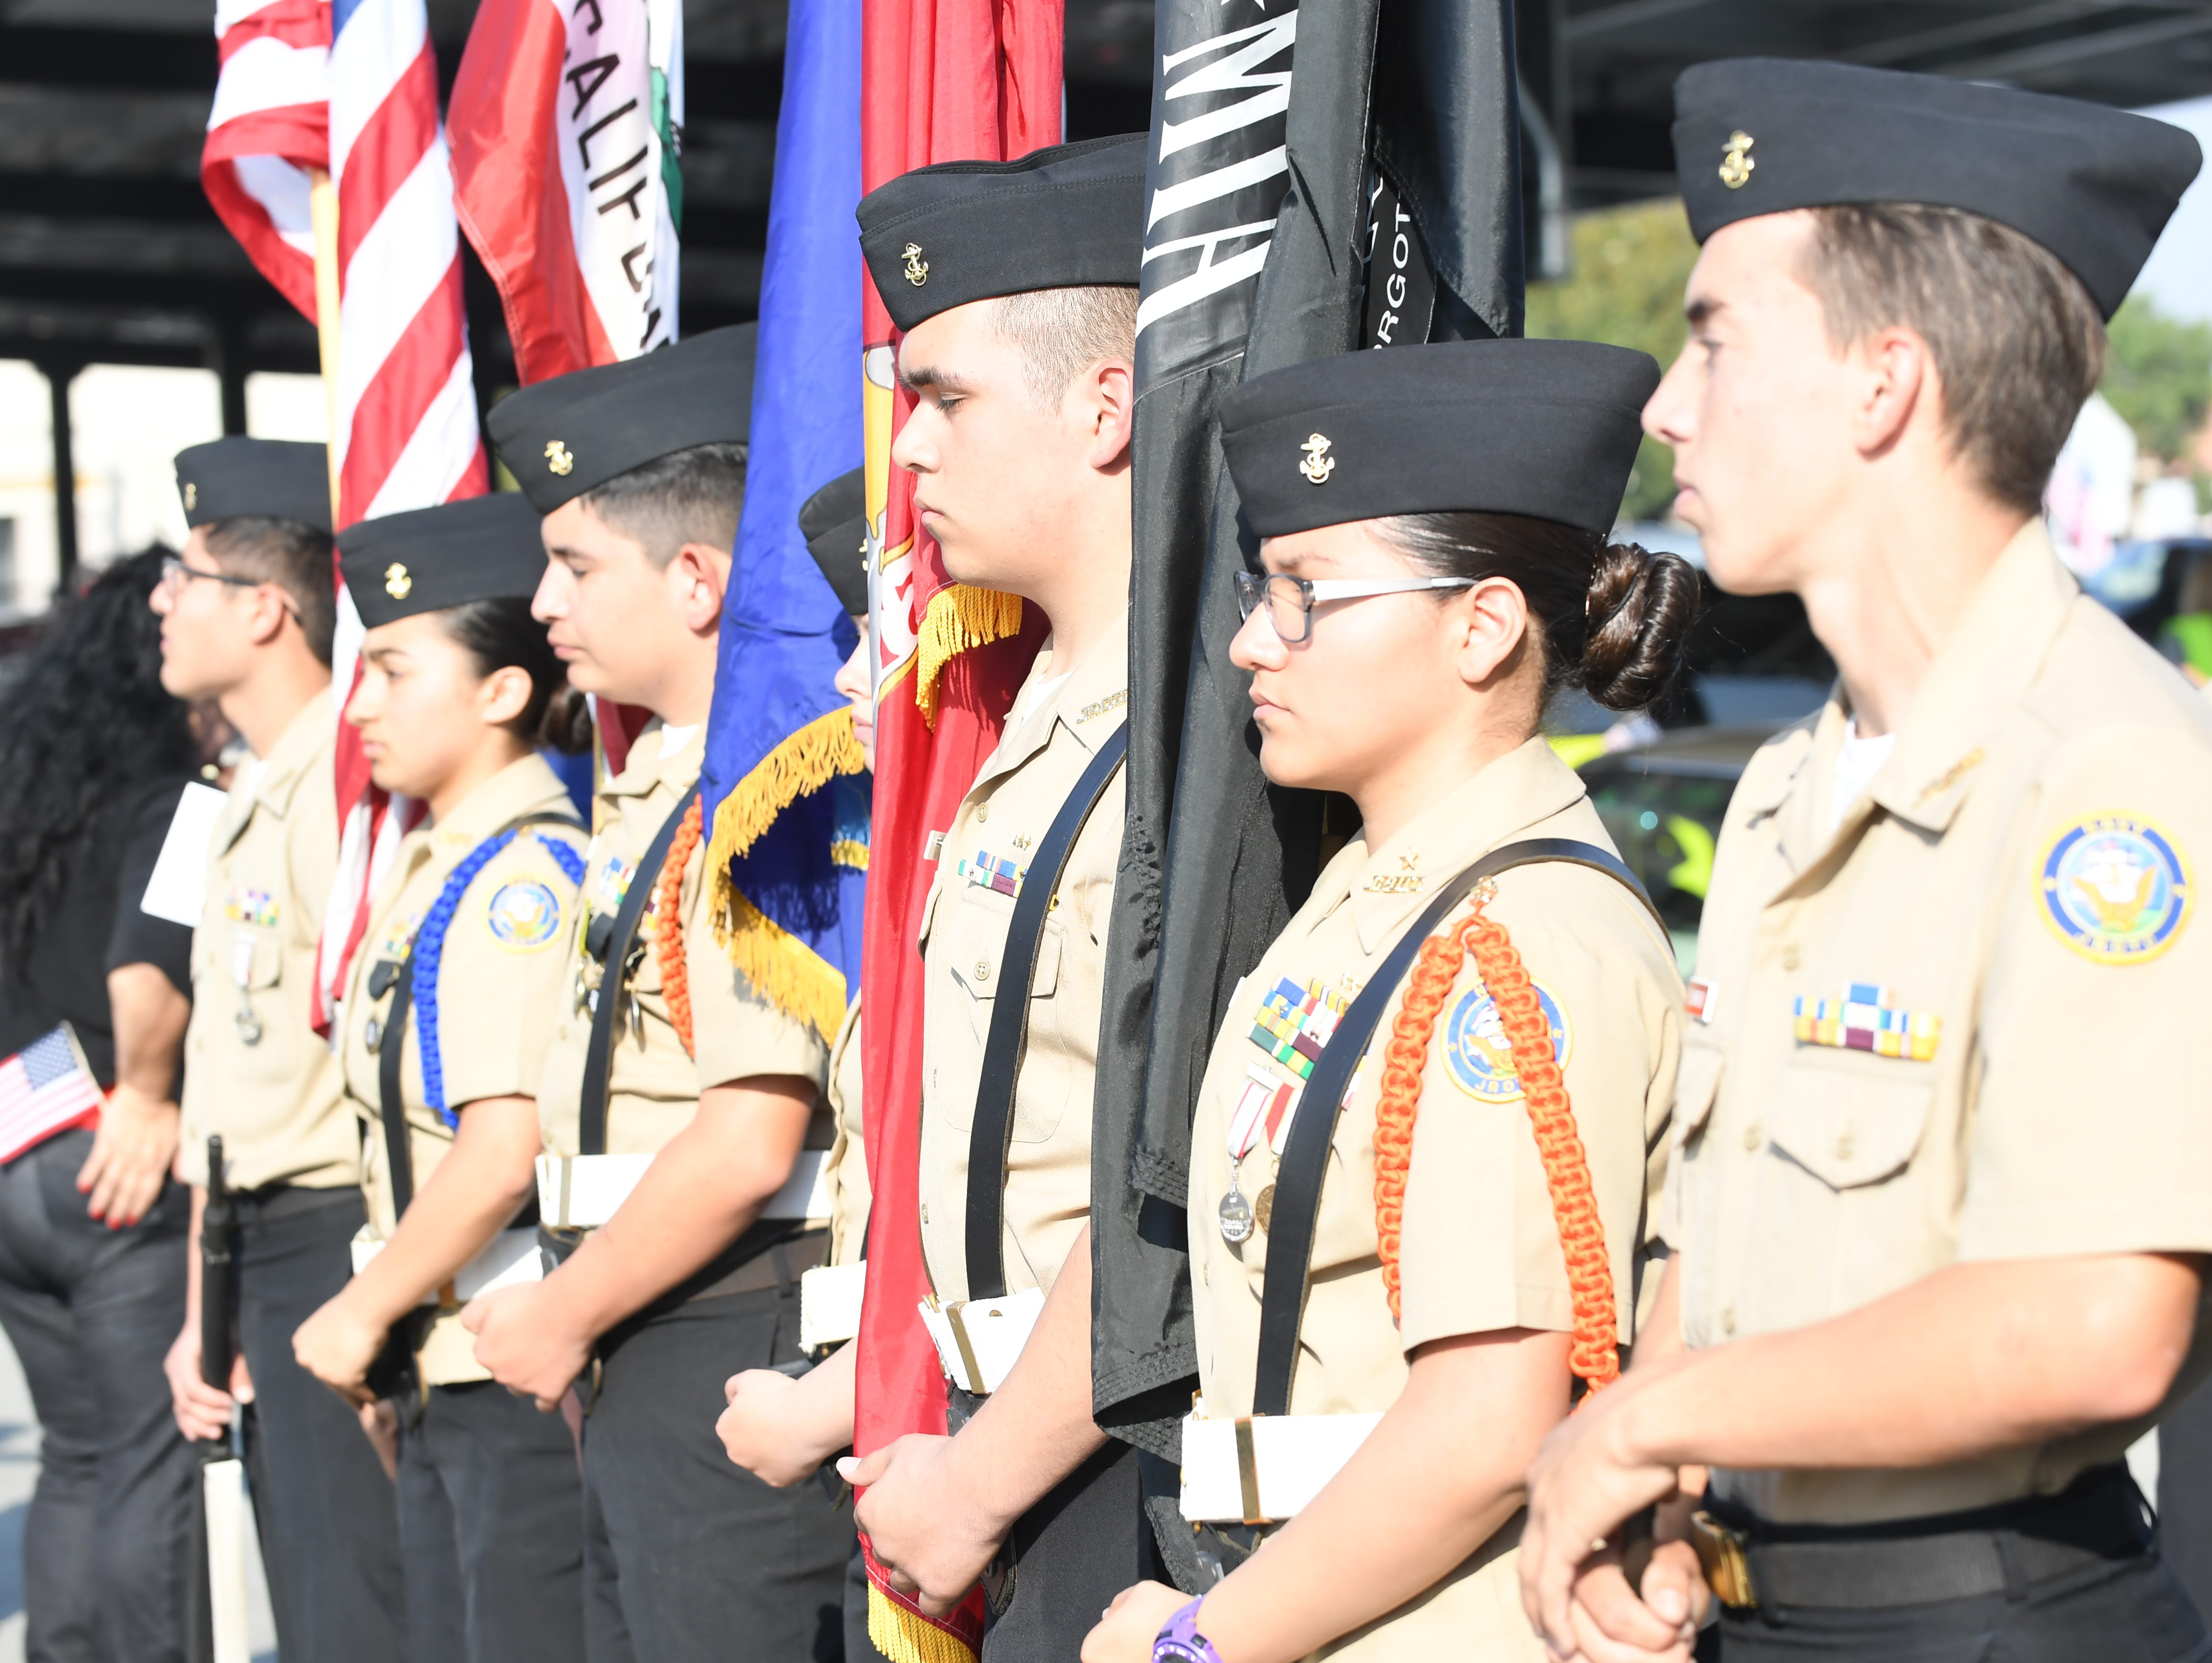 Everett Alvarez High School's Junior Reserve Officer Training Corps participated in Sunday's Monterey County Veterans Day Parade in Salinas.